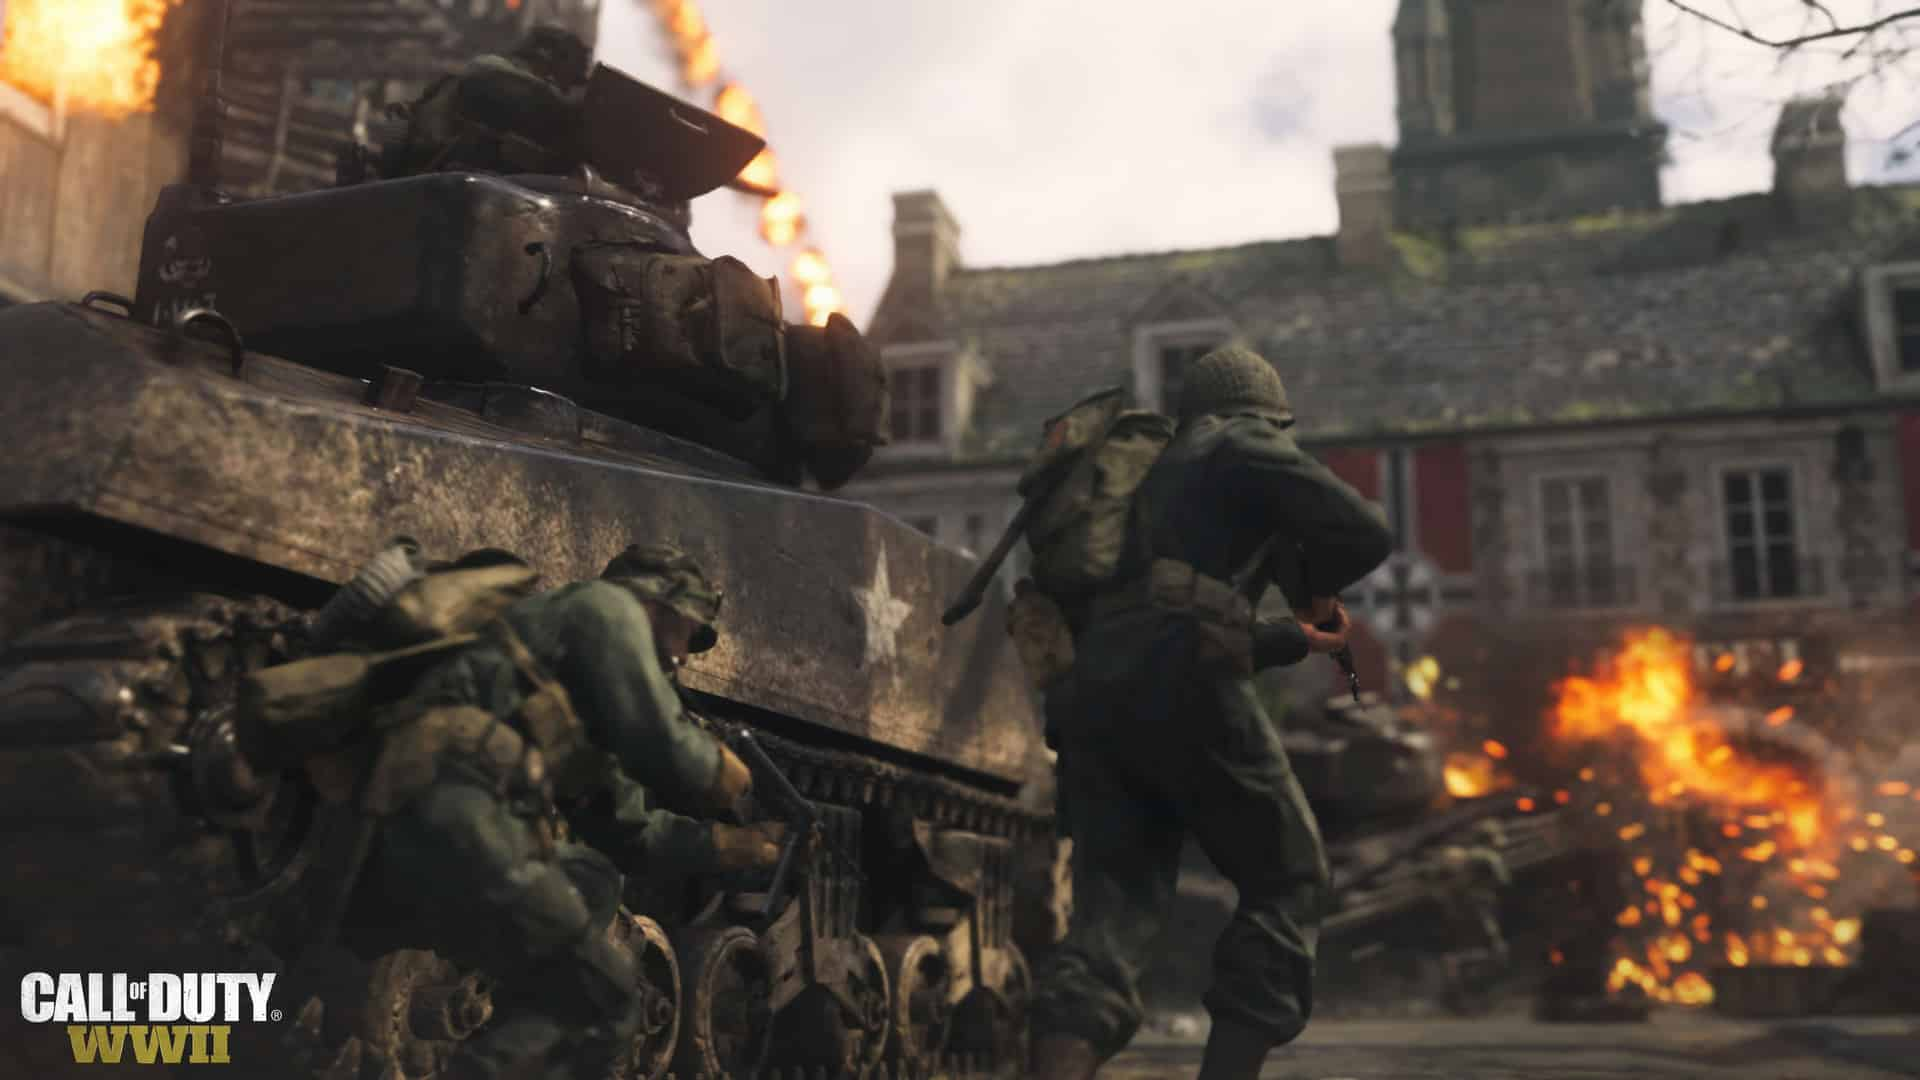 Call of Duty: WW2 Makes $500 Million in First Weekend